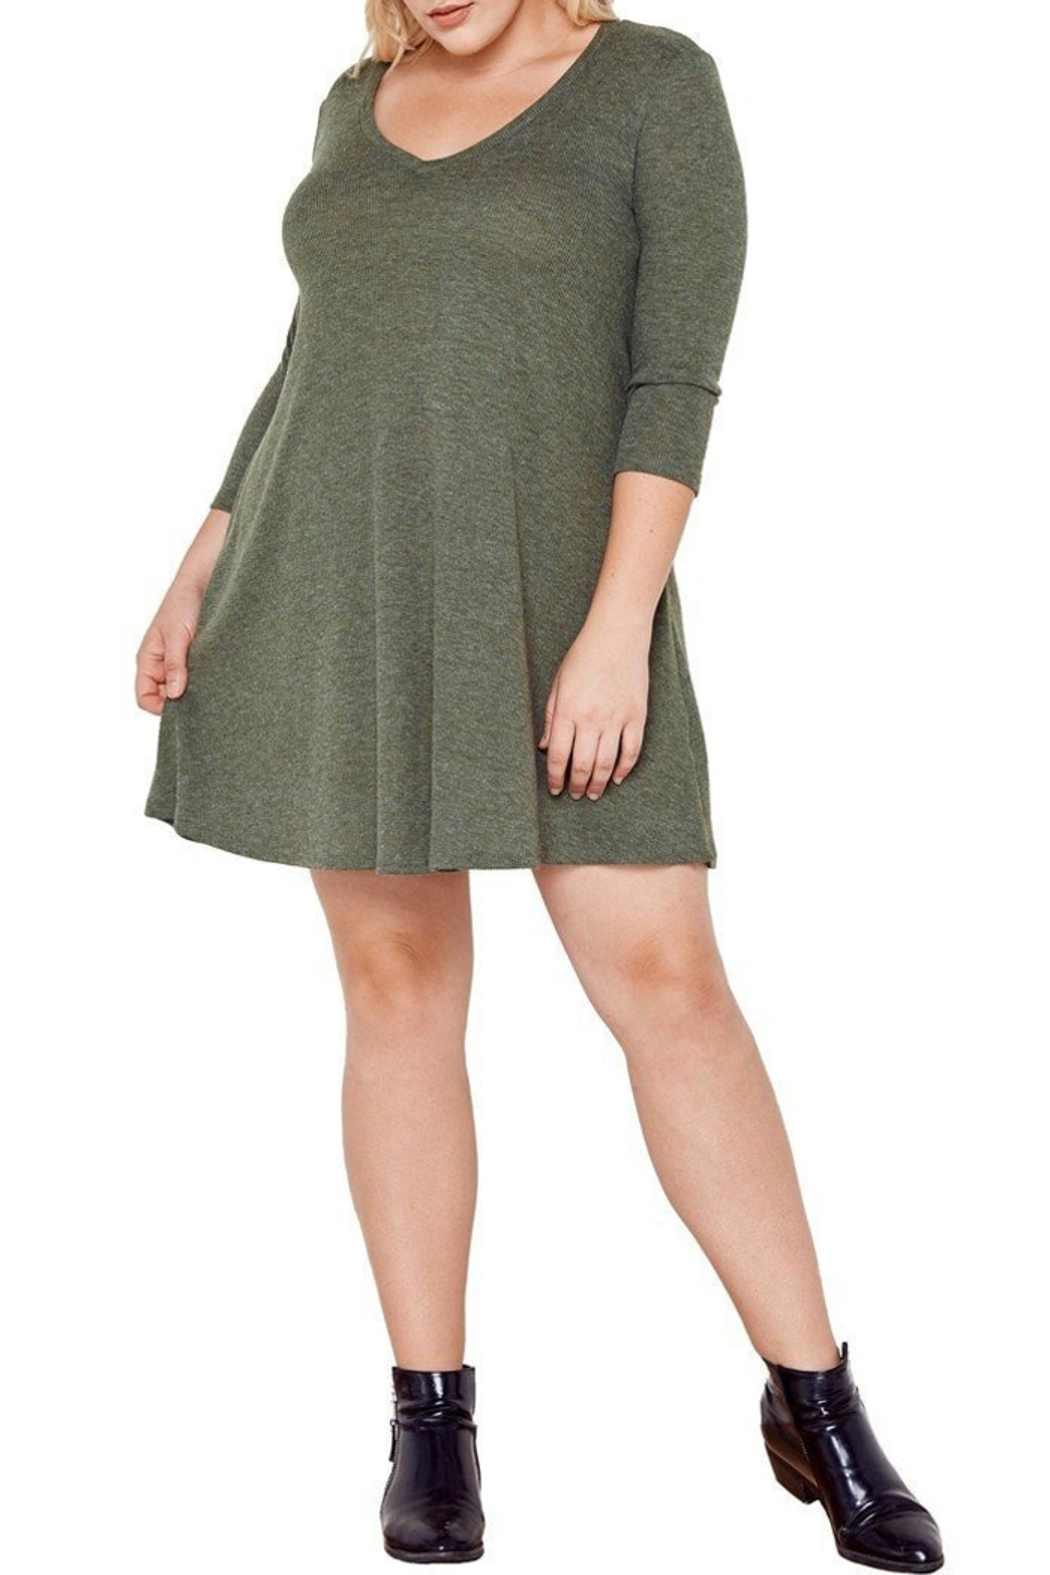 MaiTai Olive Ribbed Dress - Side Cropped Image